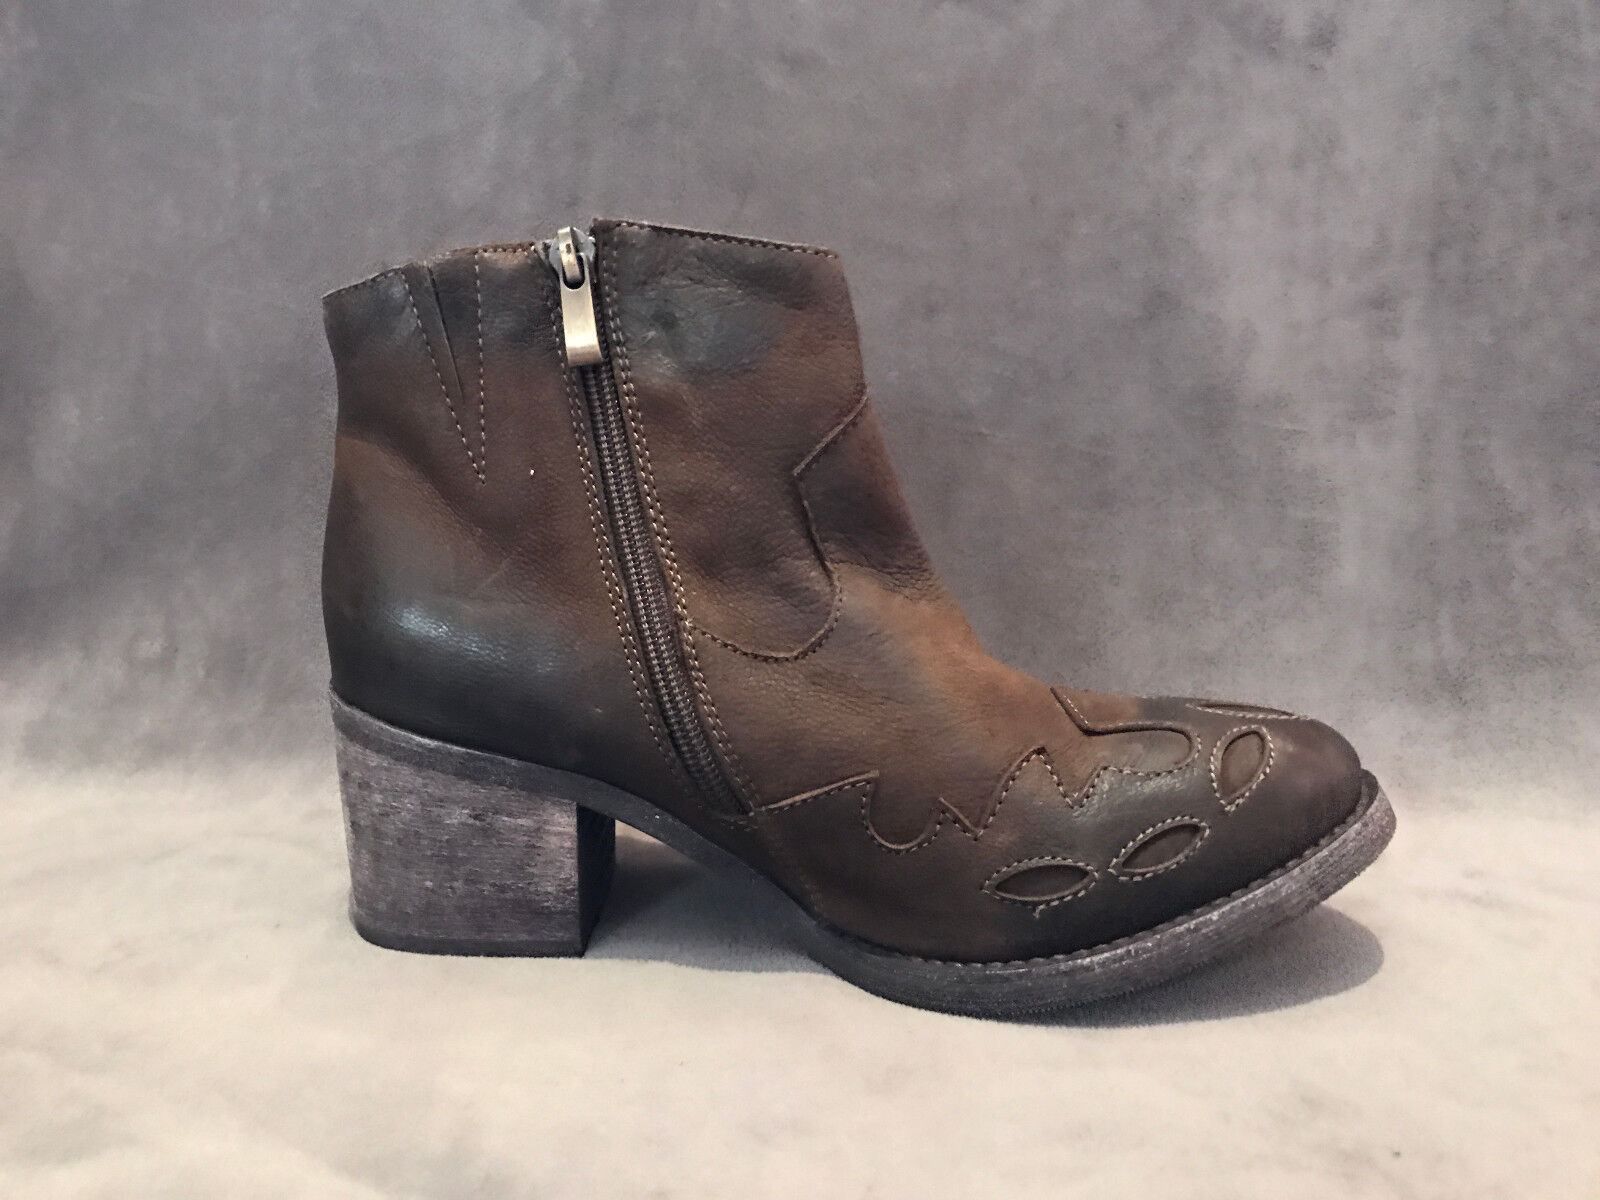 NEW BOOTIES ANTHROPOLOGIE ANTELOPE BROWN COWBOY BOOTIES NEW Stiefel Schuhe SZ 37 94eef4